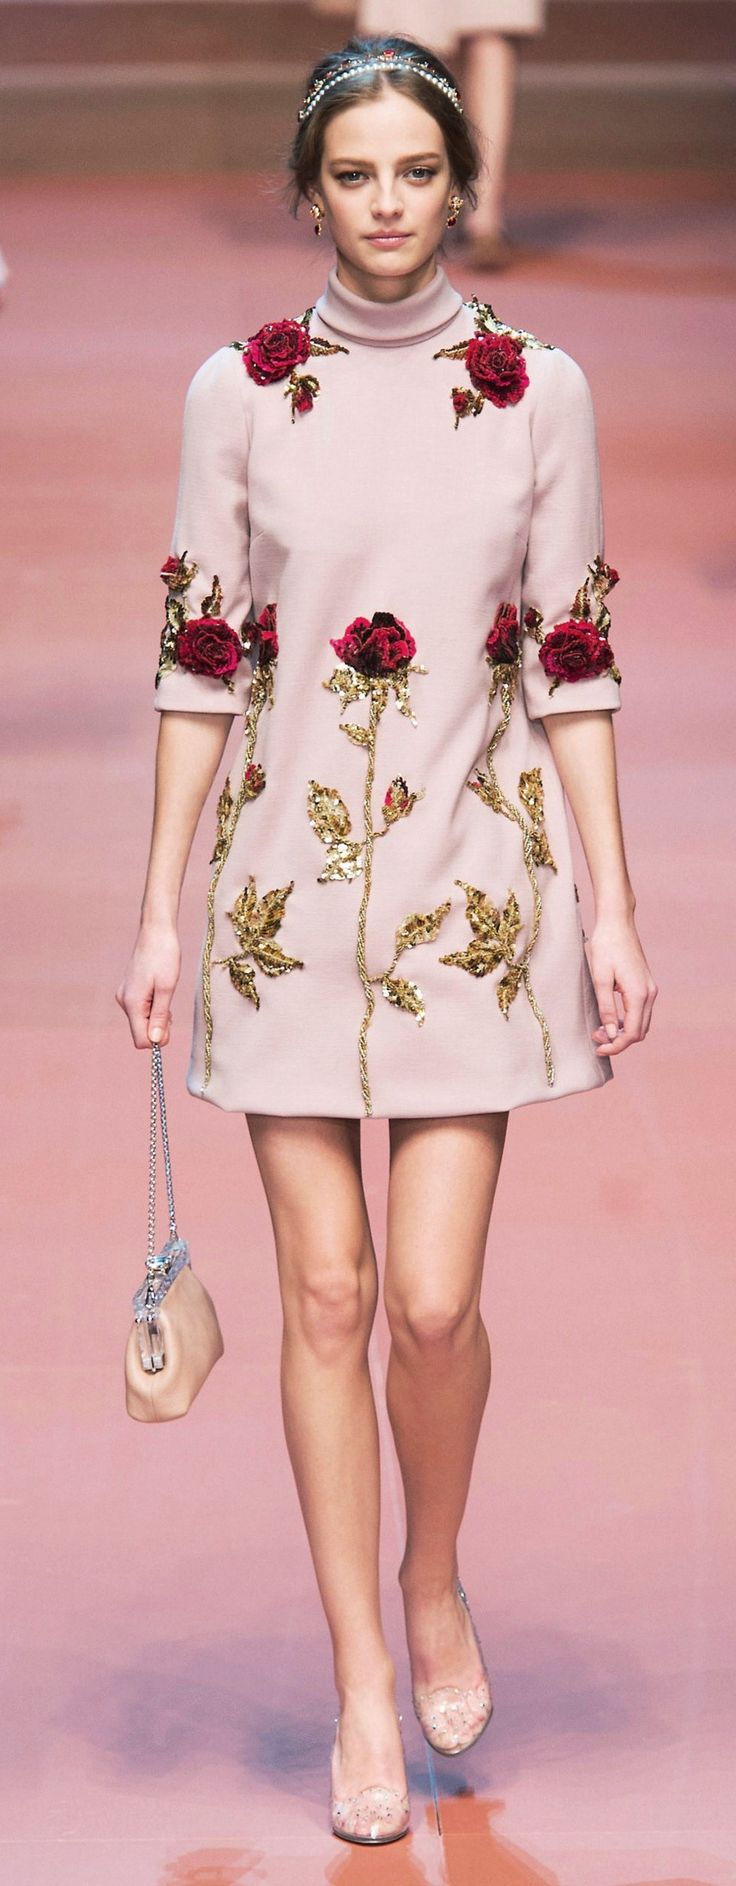 509 best images about Dolce & Gabbana